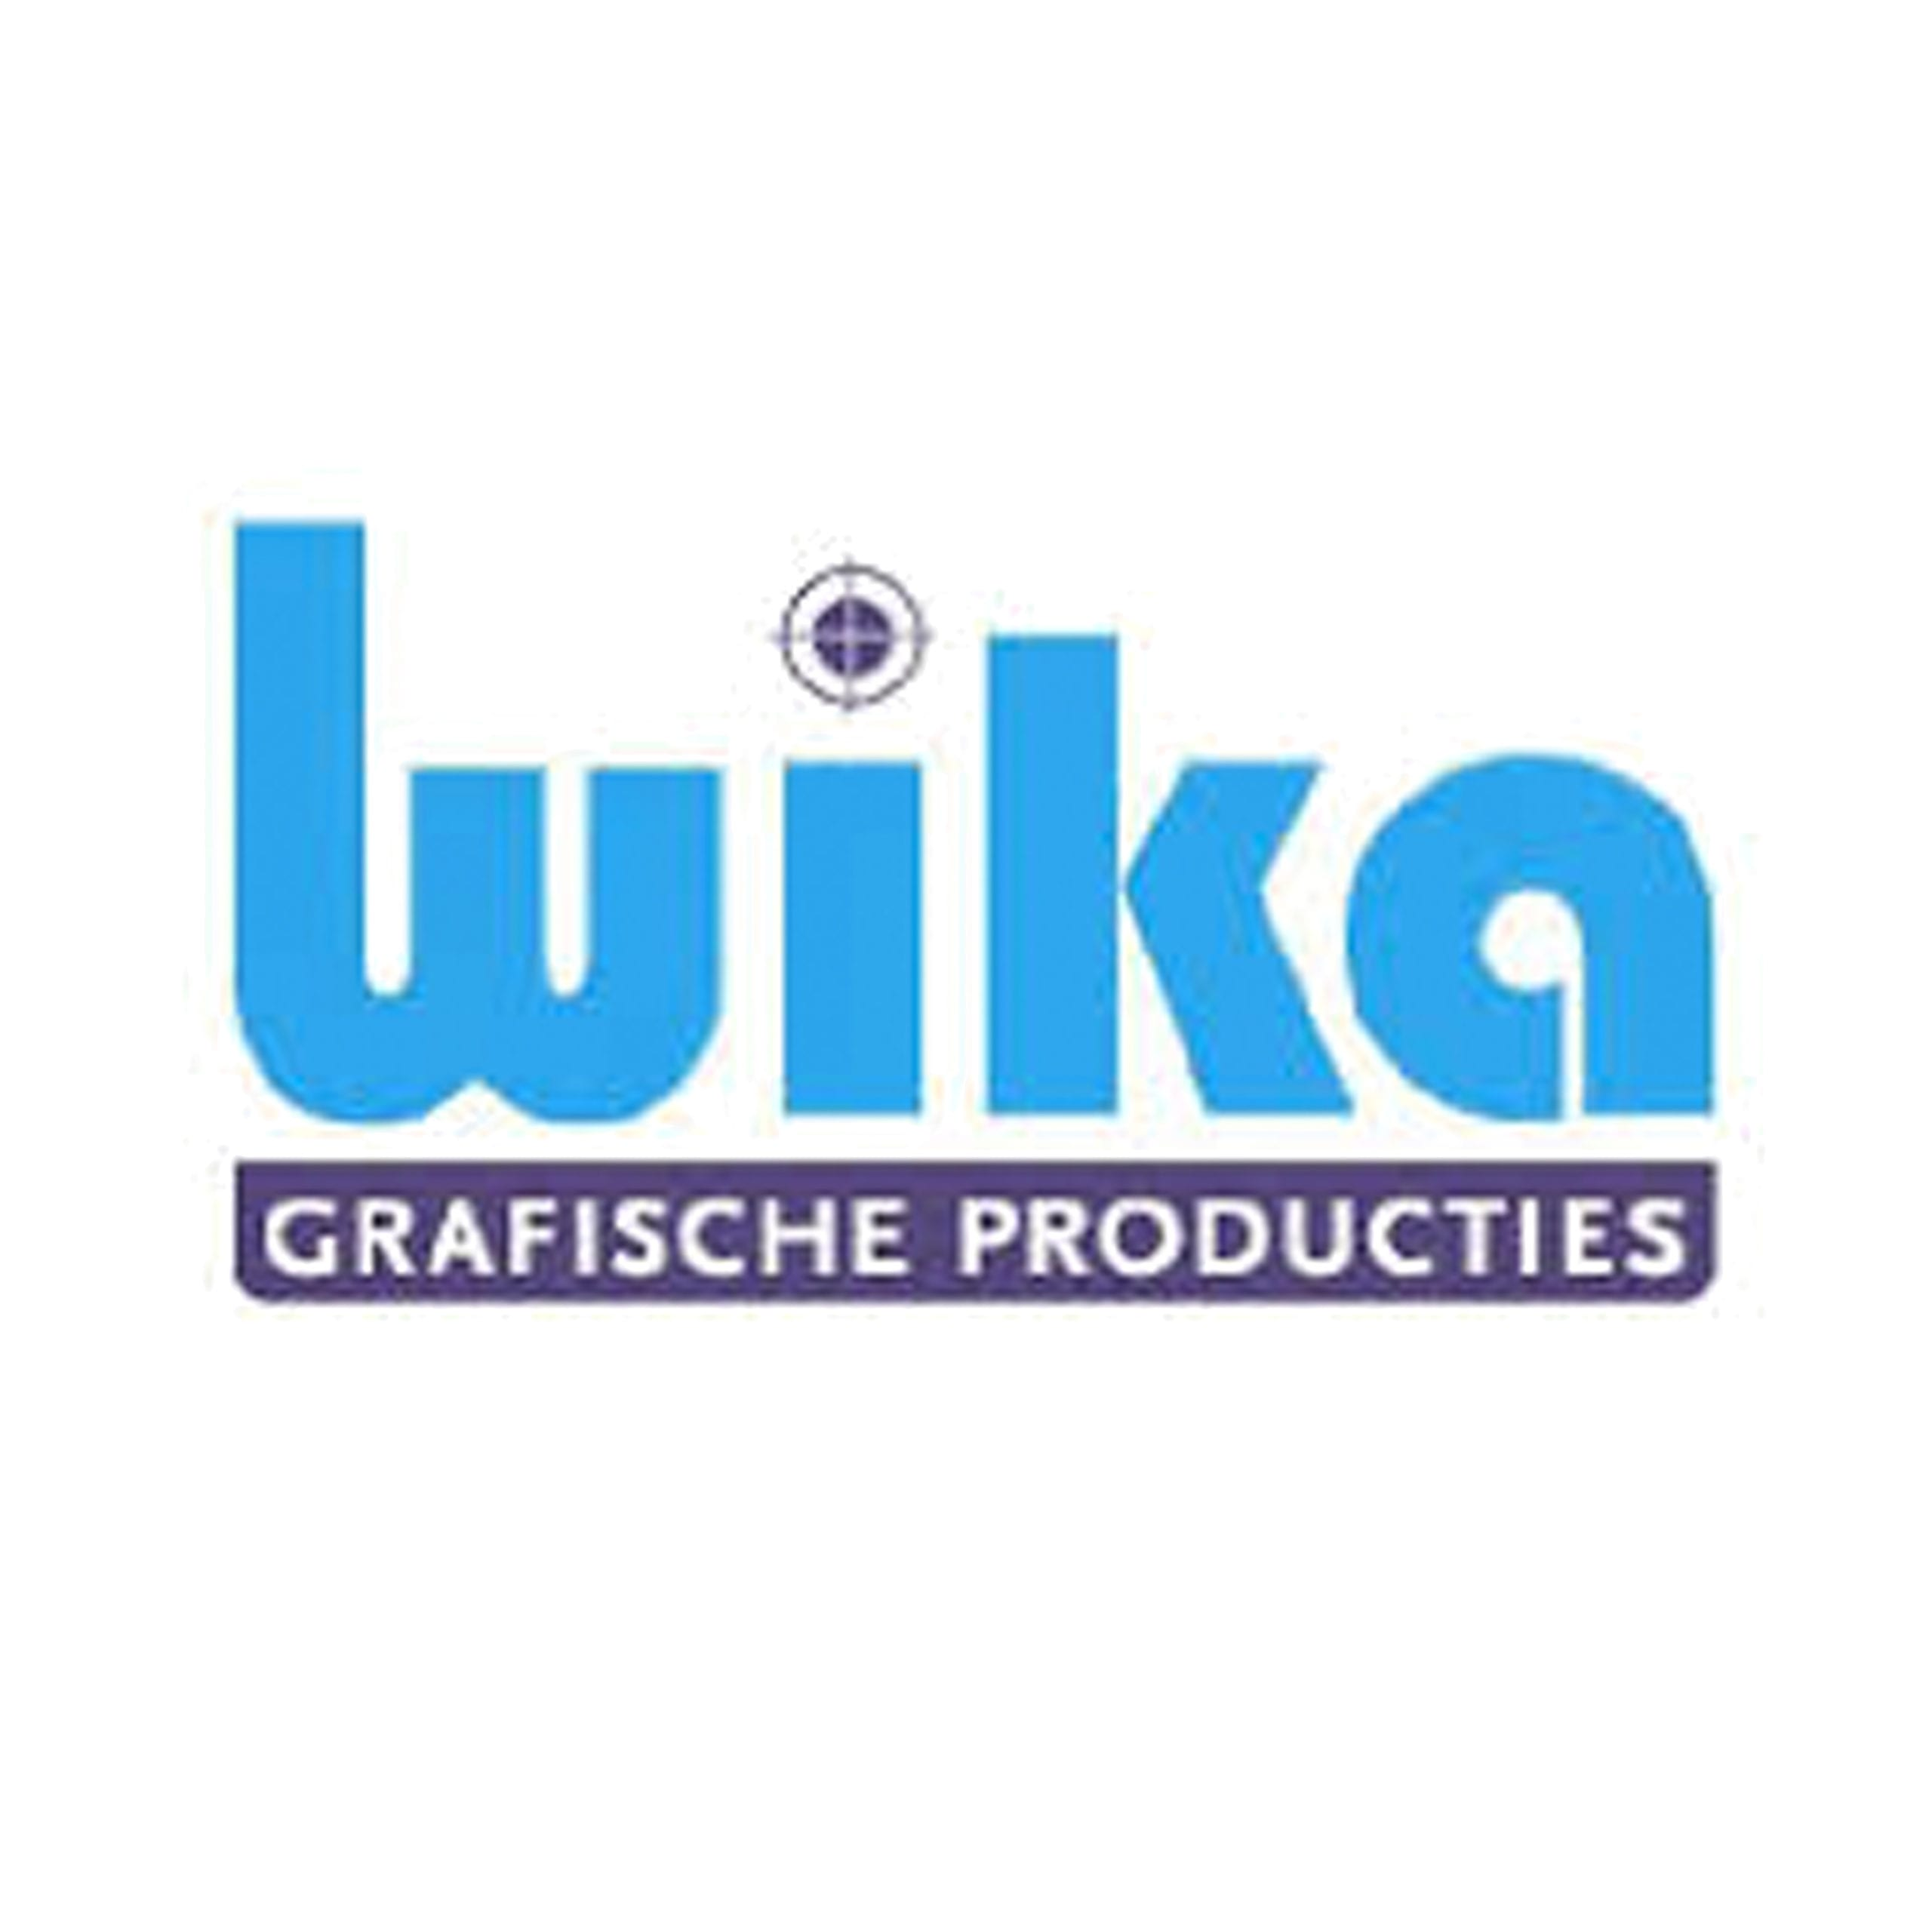 Wika - Team van de week!